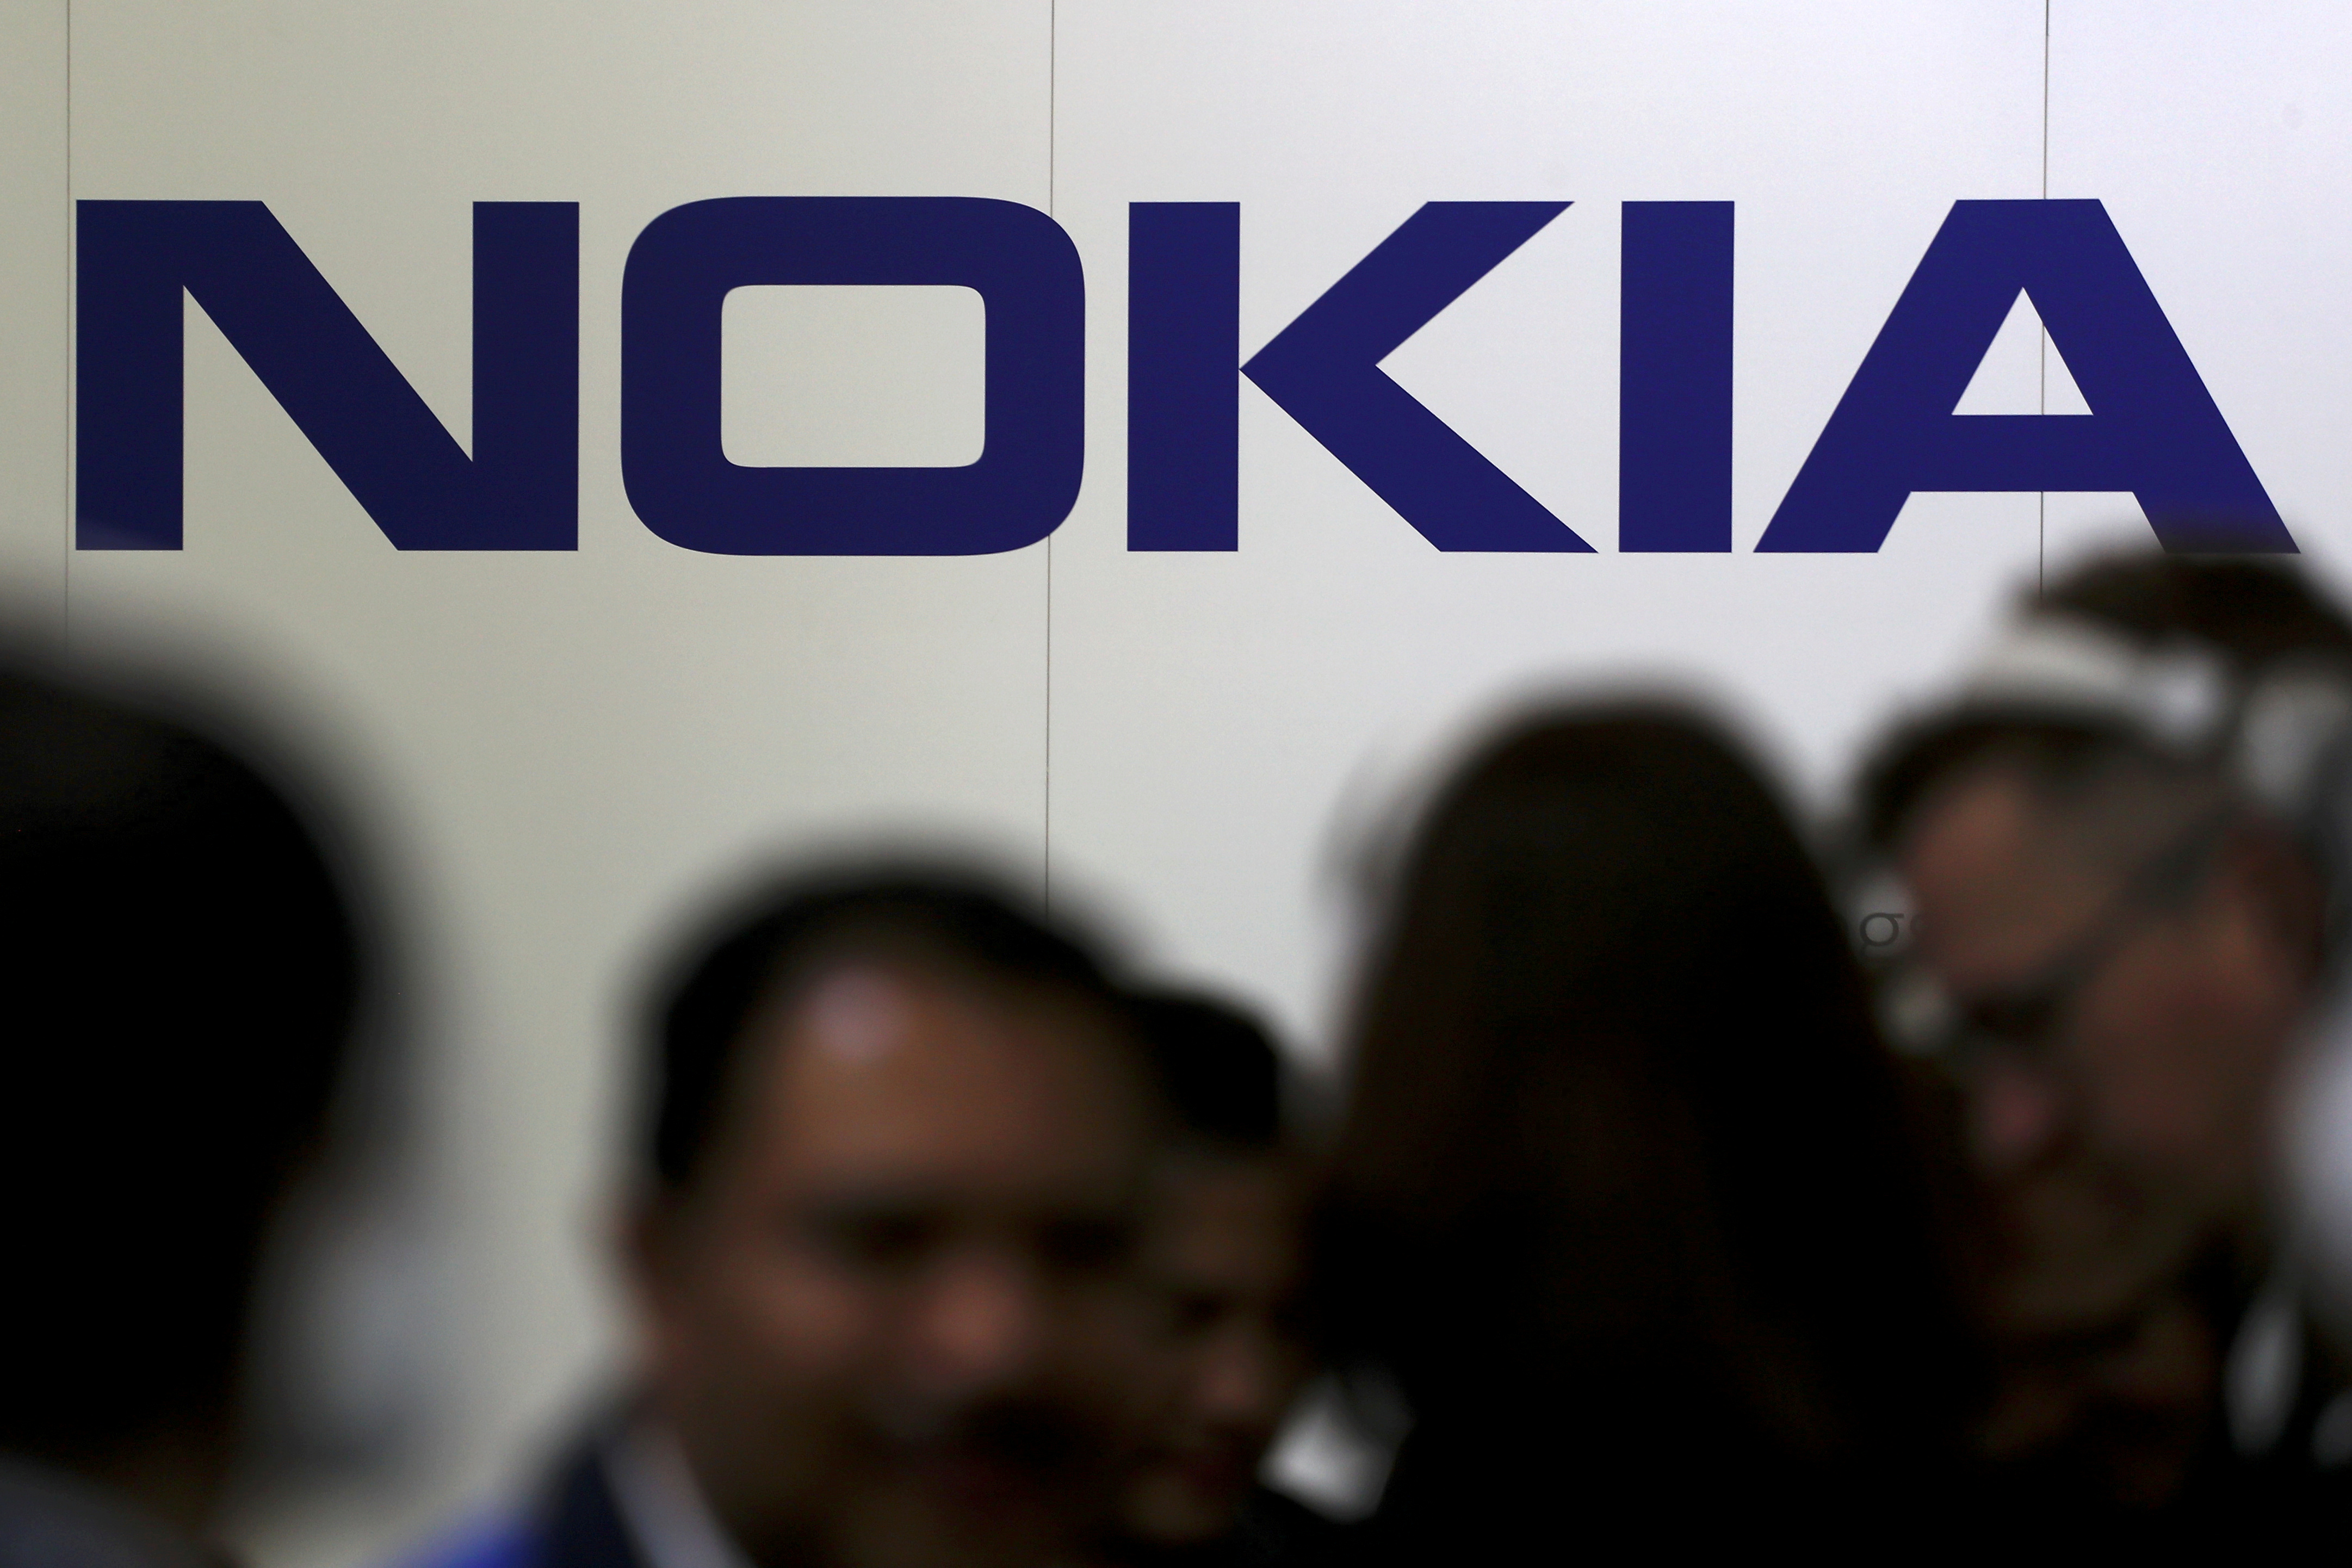 Visitors gather outside the Nokia booth at the Mobile World Congress in Barcelona, Spain, February 26, 2019. REUTERS/Sergio Perez